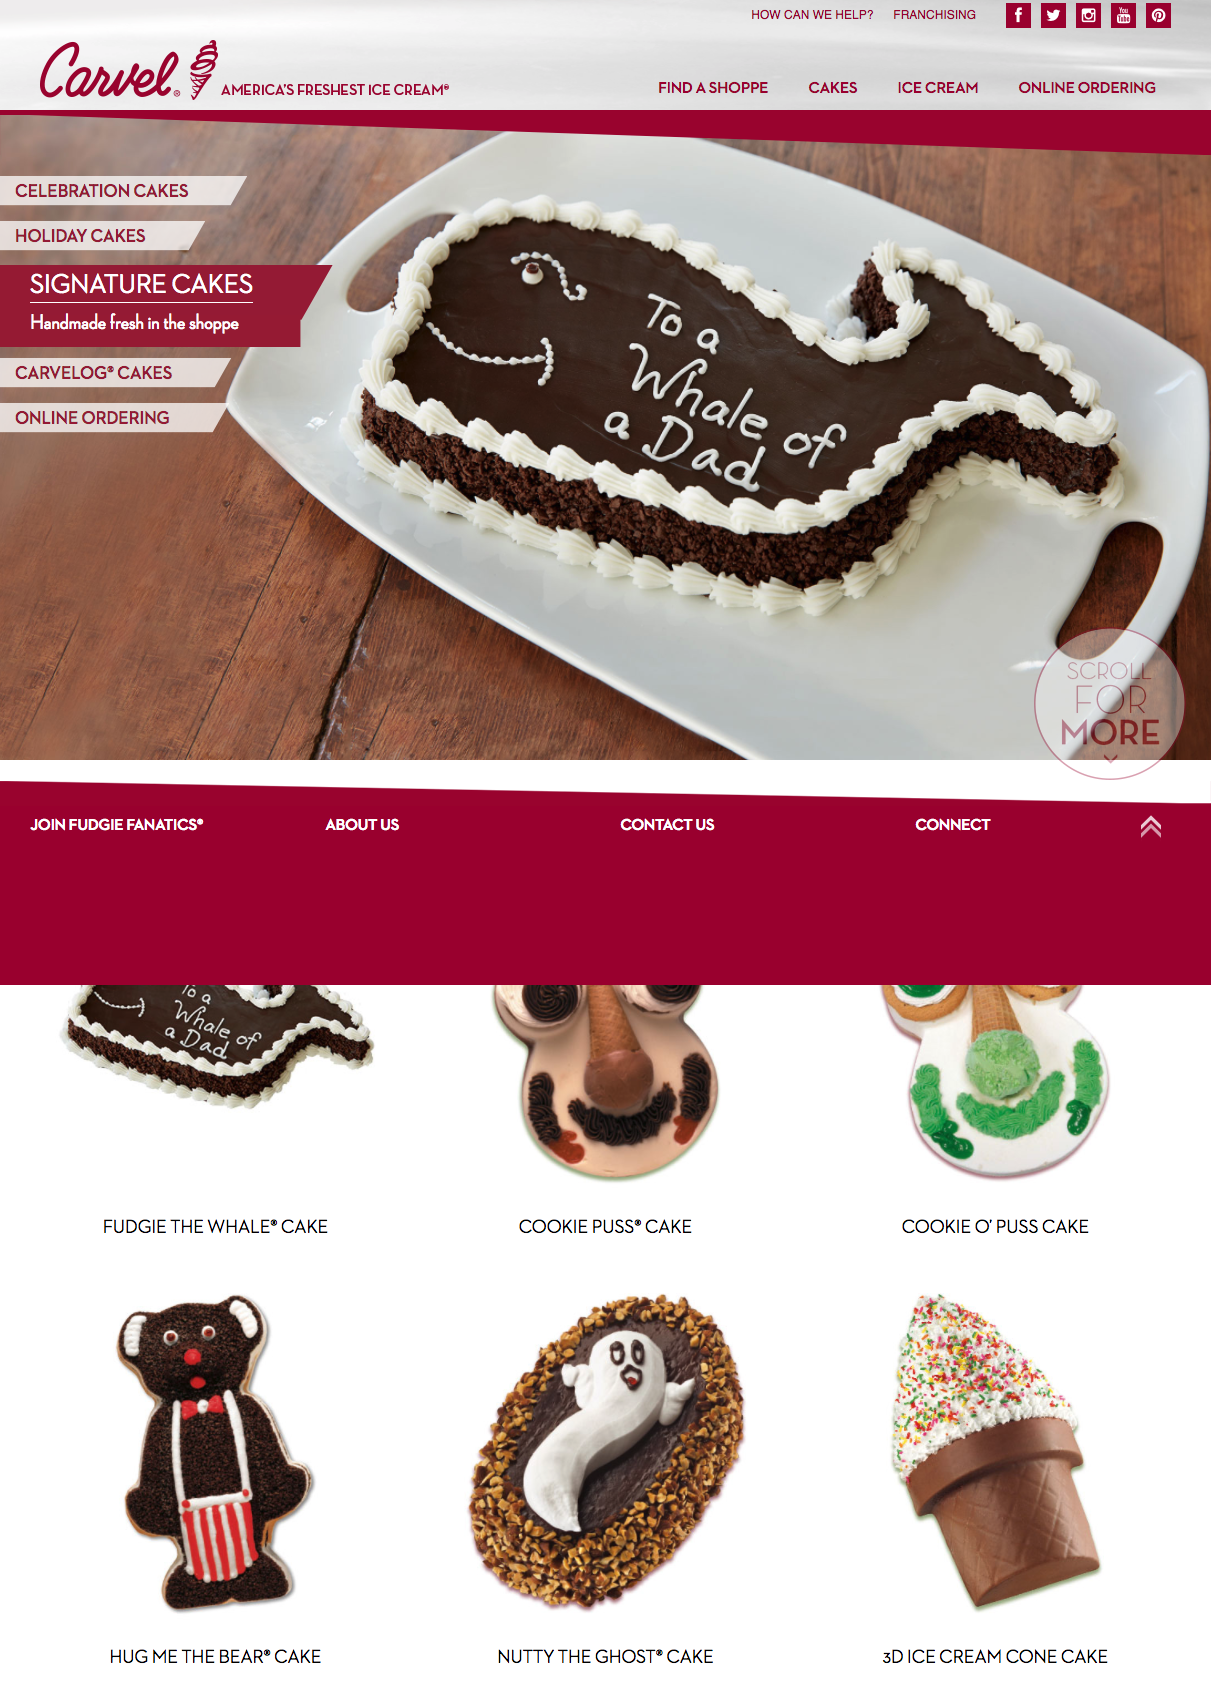 The Old Carvel Website - Desktop - The previous Carvel website fairly simple but had many outdated features, such as an automated carousel for advertisements and limited time offers.